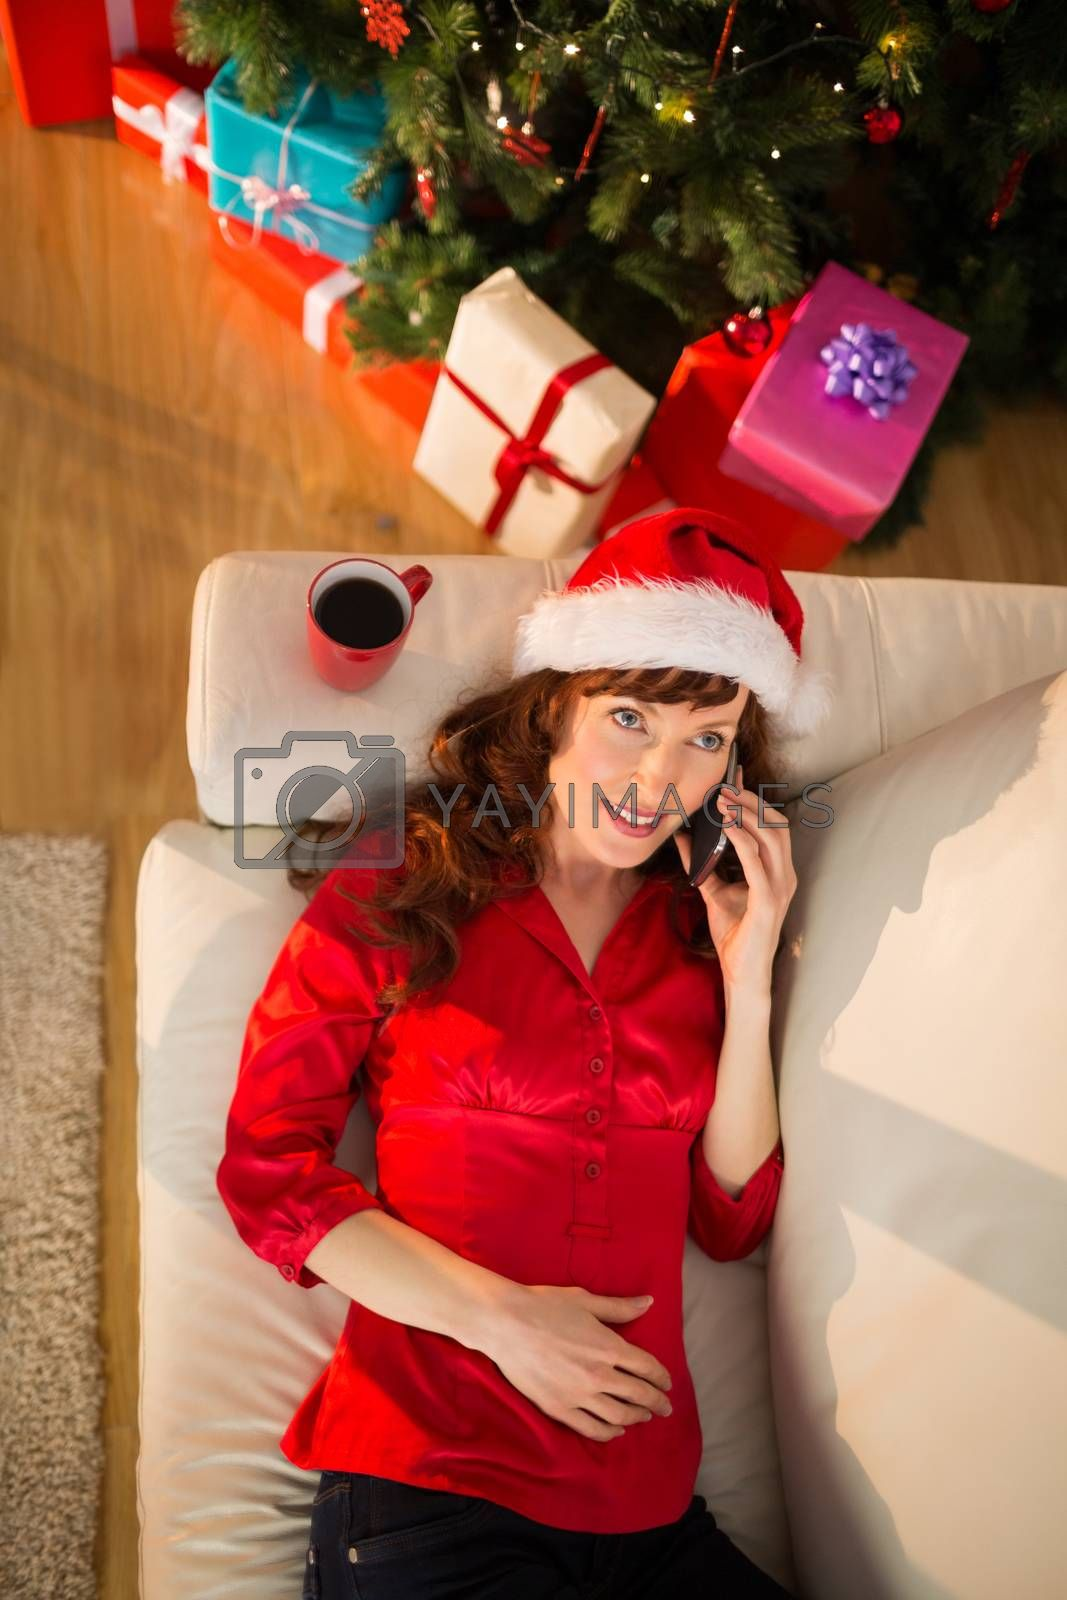 Smiling redhead on the phone at christmas at home in the living room